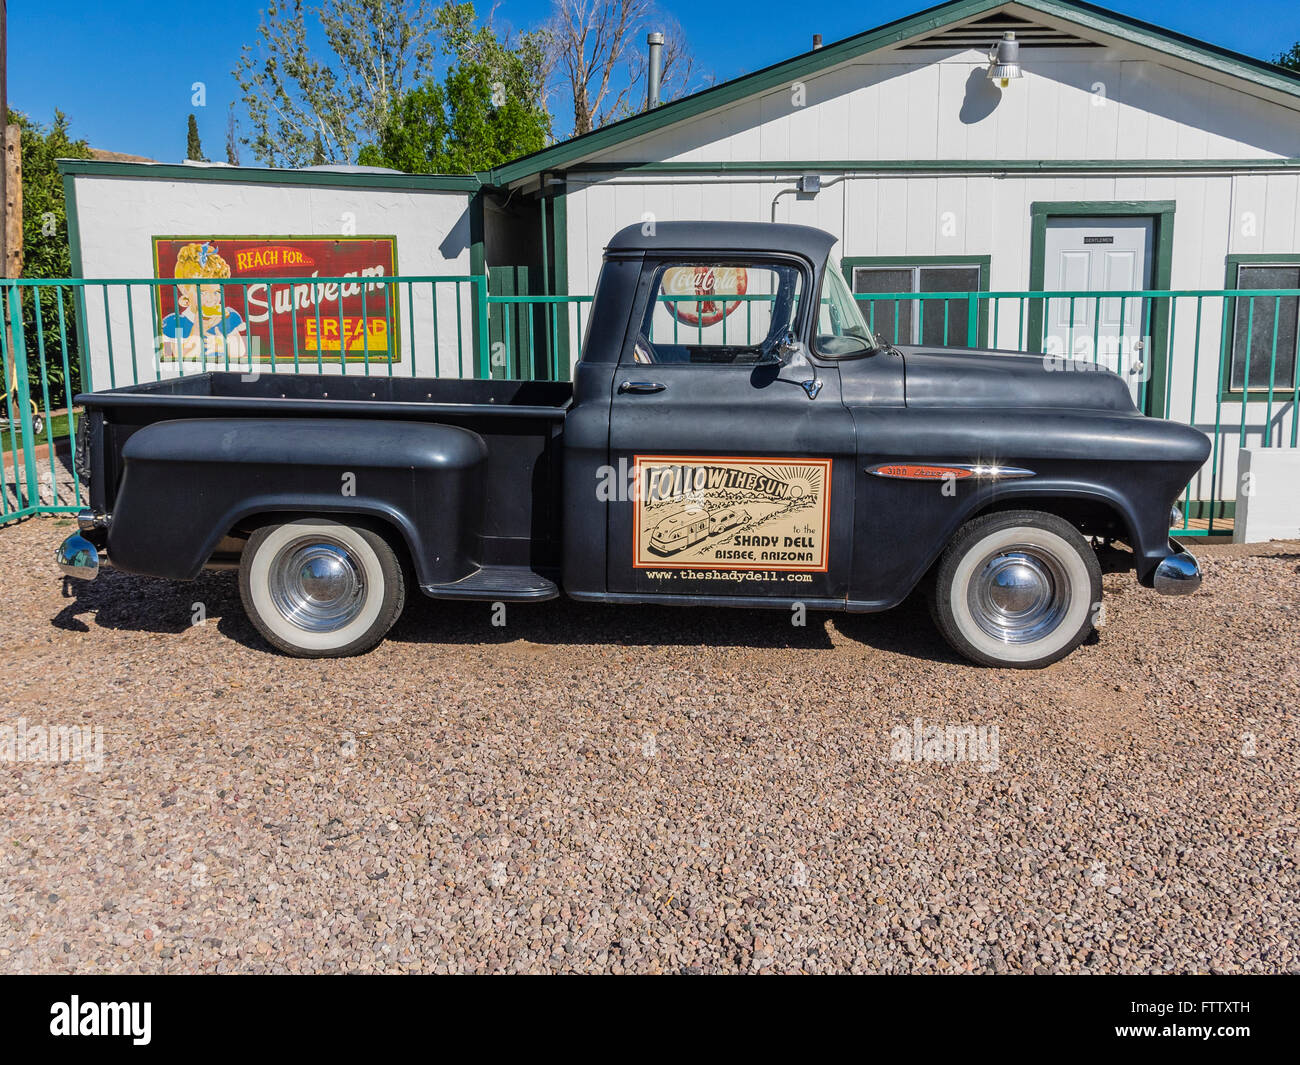 Pickup truck for the Shady Dell Trailer Park, Bisbee, AZ parked at the main office. Stock Photo